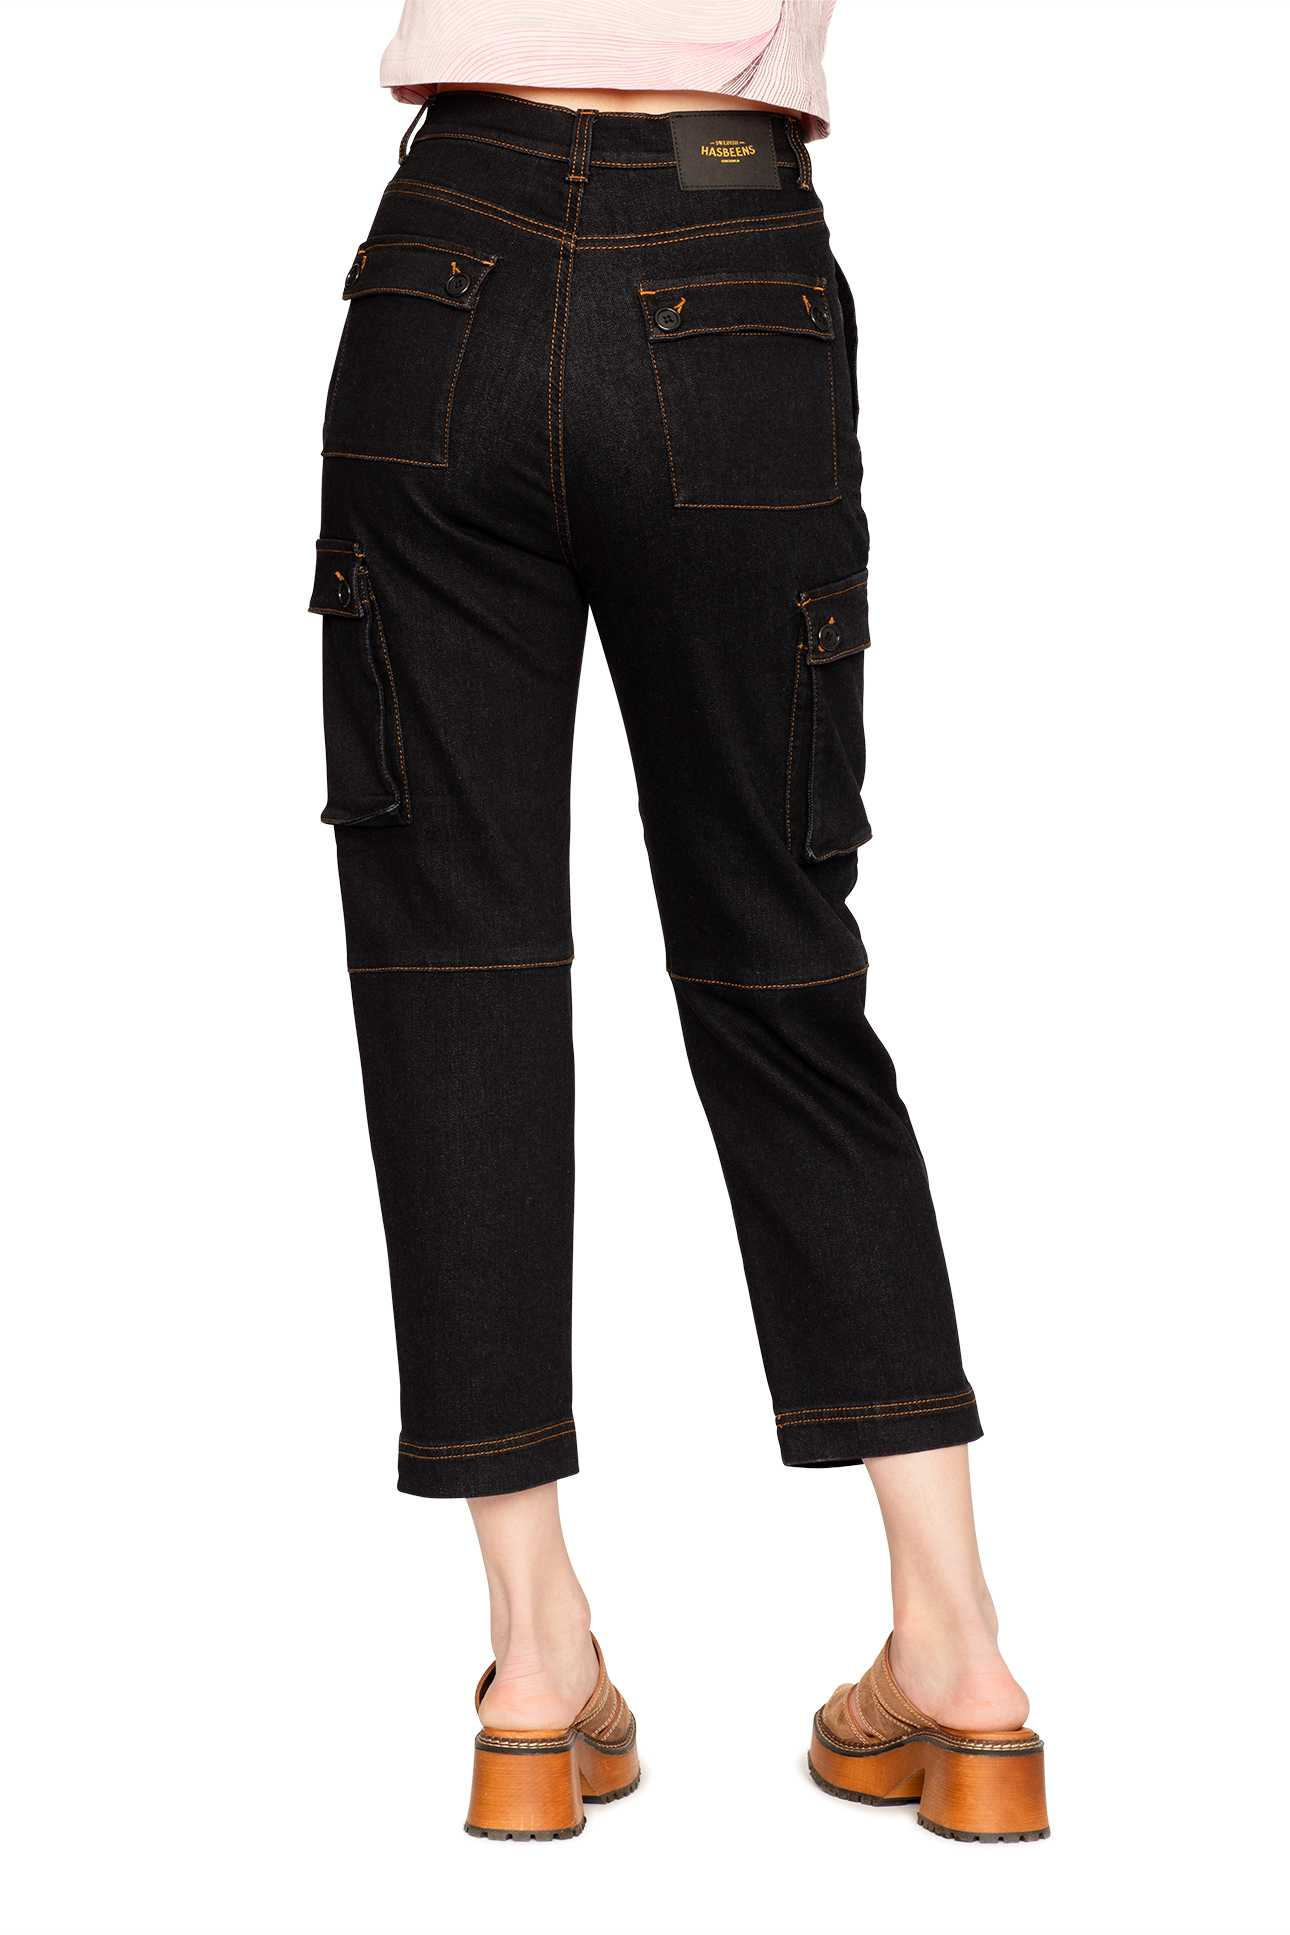 Cargo Pant Denim Mid Black Wash